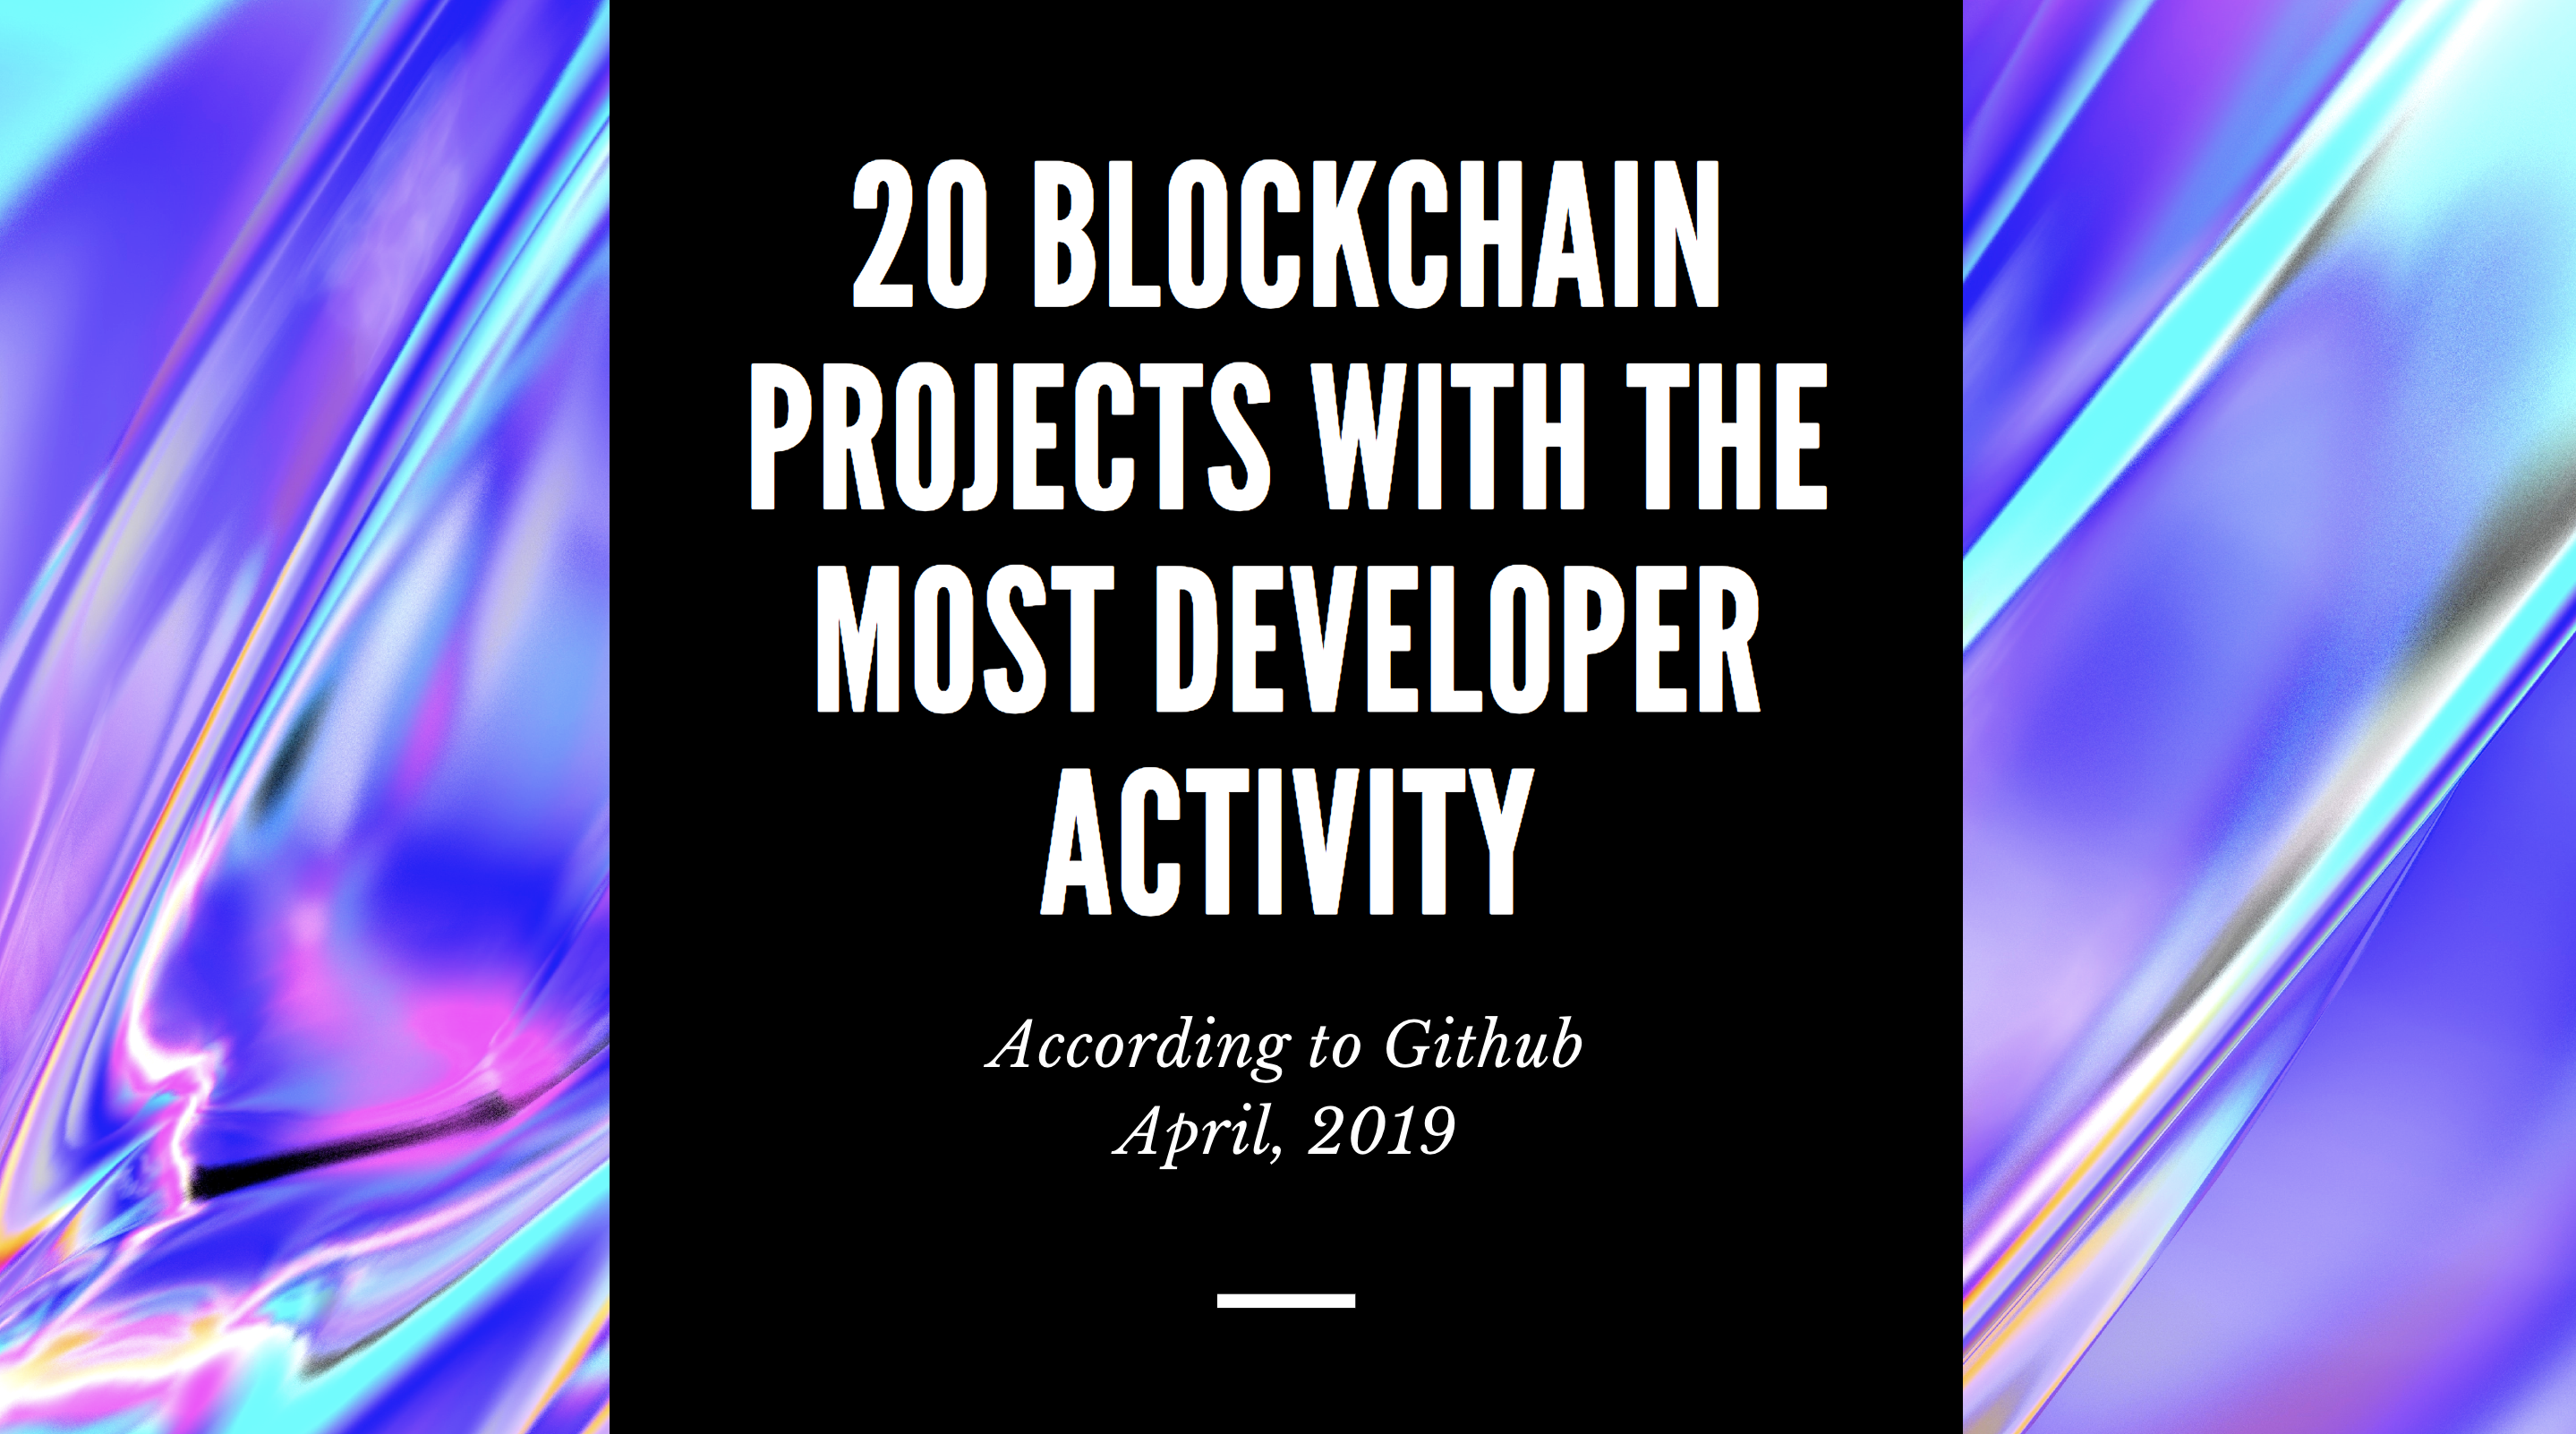 20 Blockchain Projects With the Most Dev Activity on Github